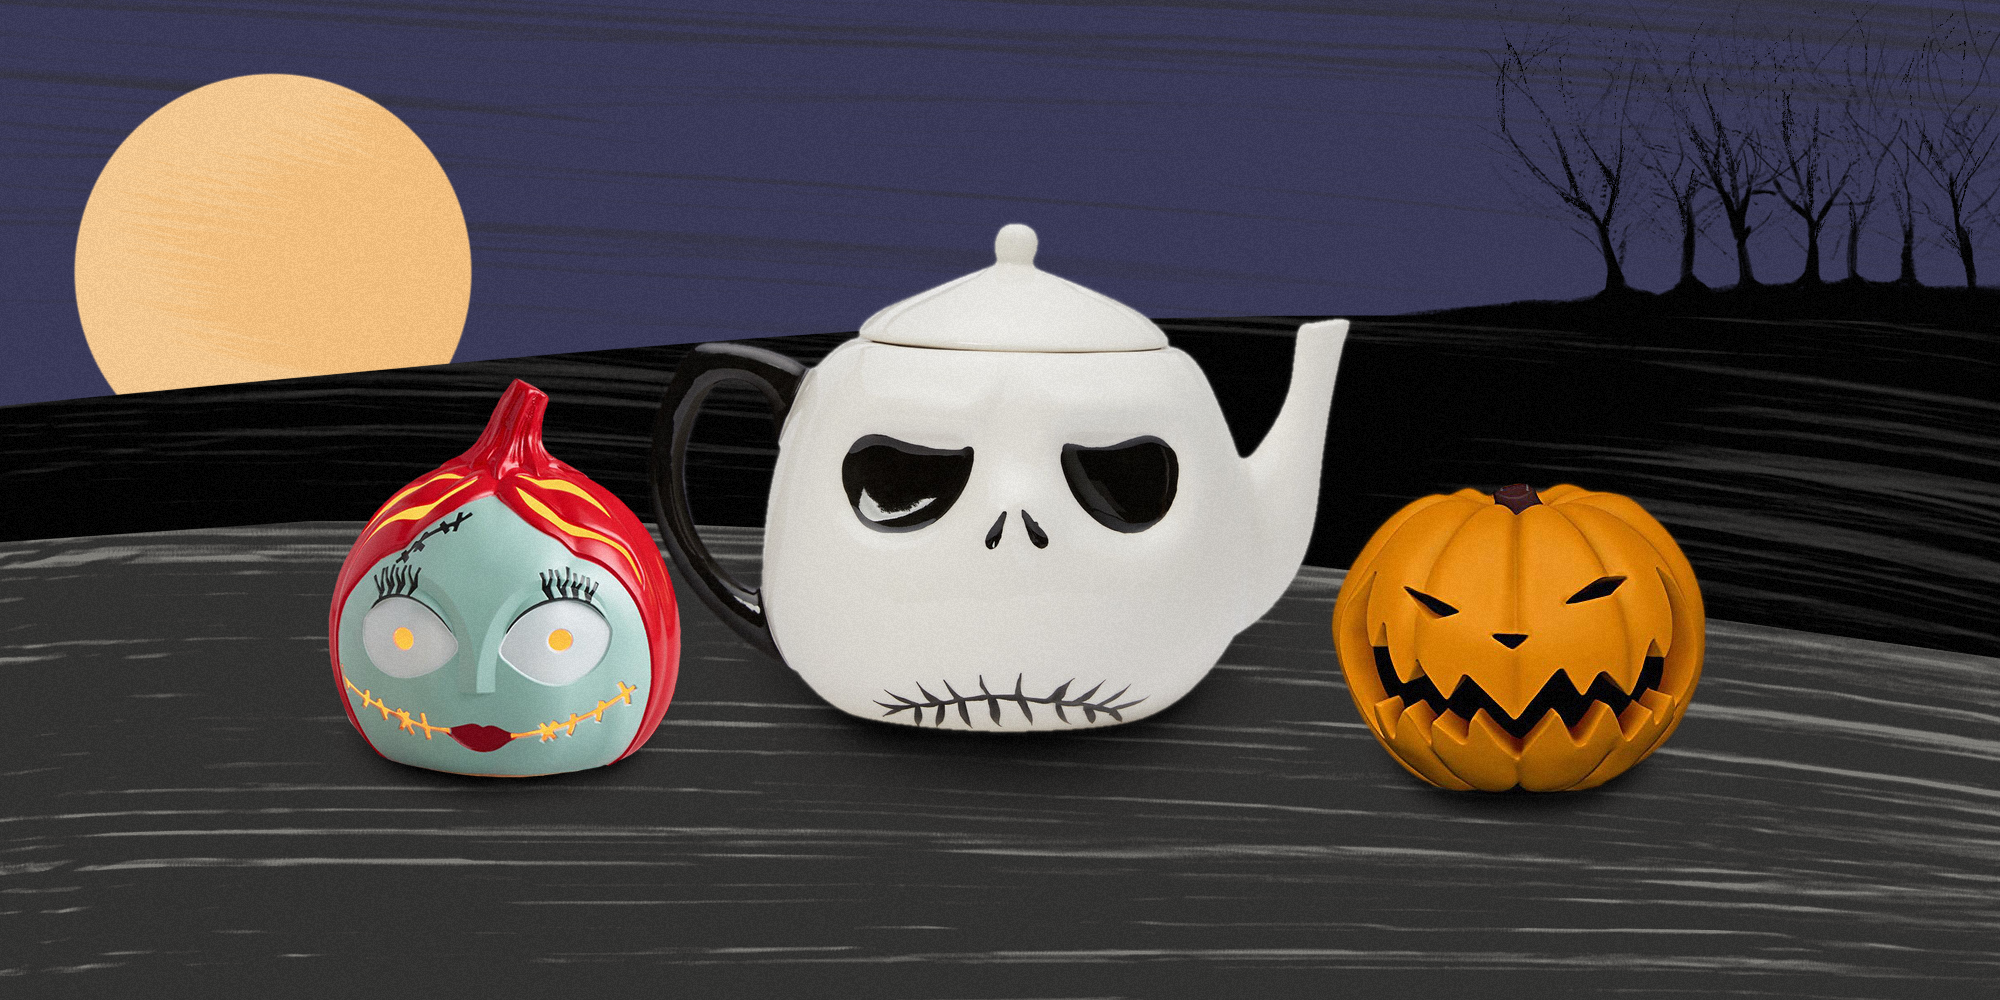 13 Best \'Nightmare Before Christmas\' Gifts and Decor Ideas 2018